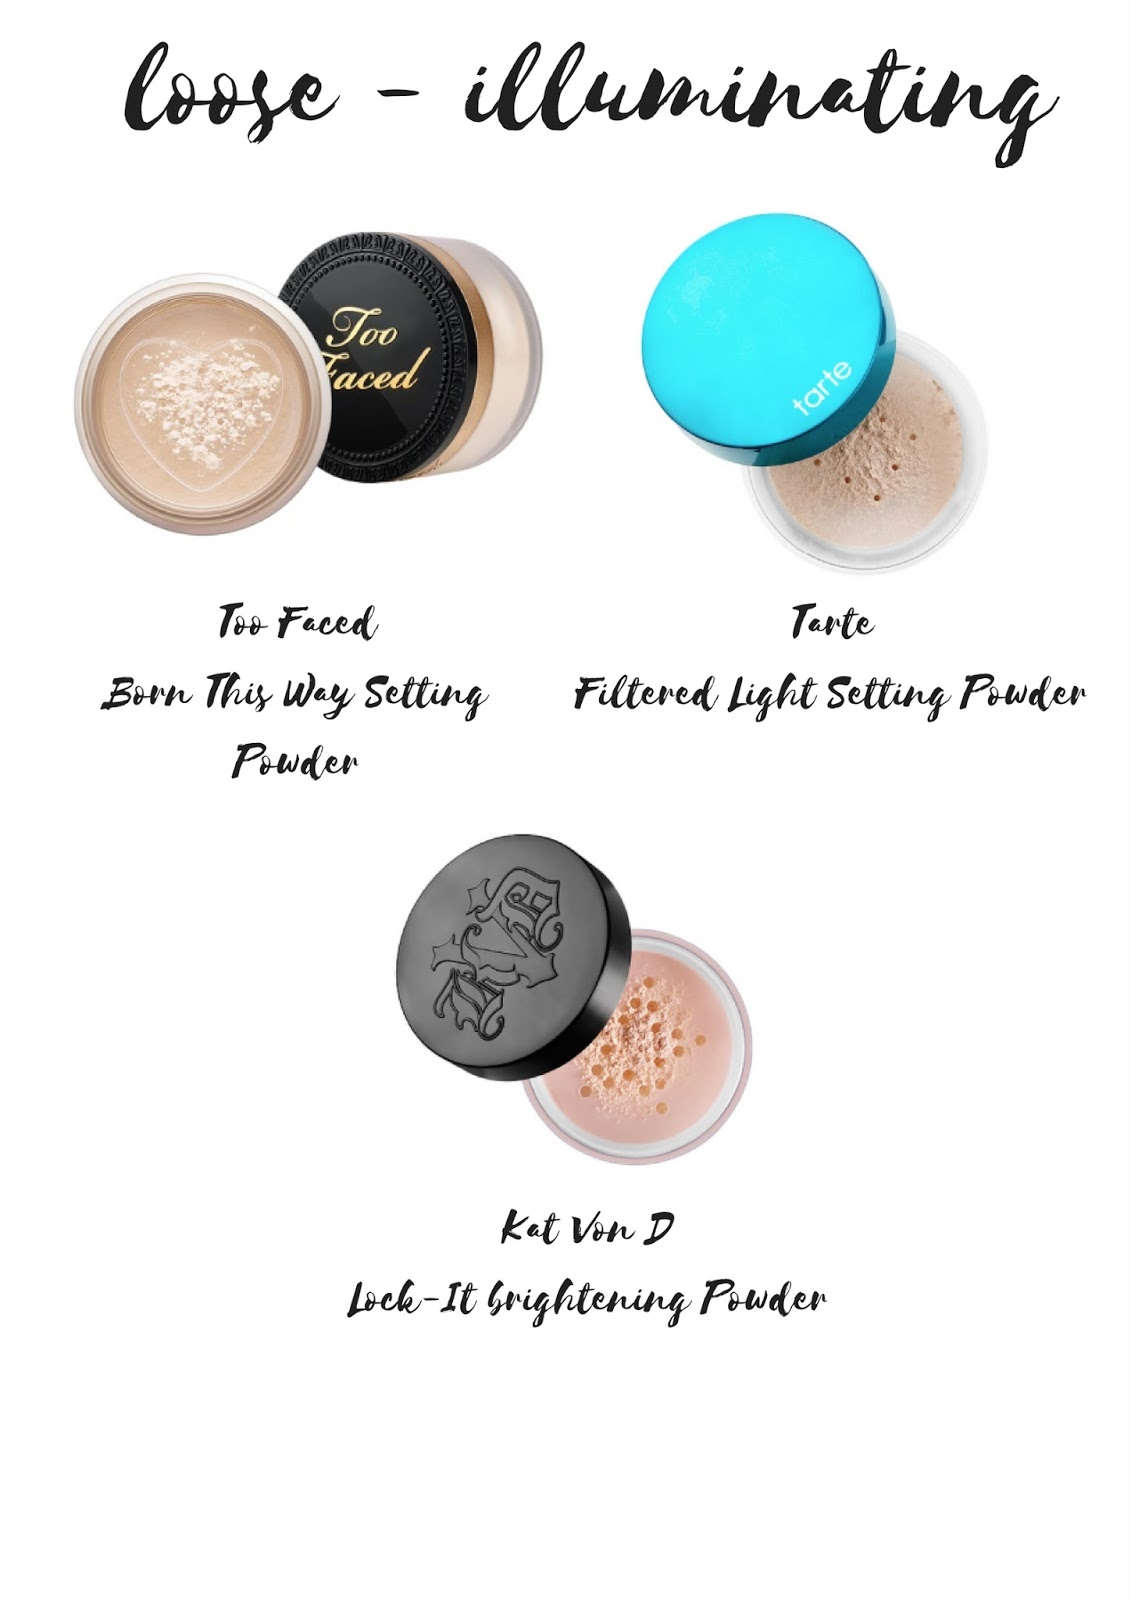 557a45117432 How To Use Tarte Filtered Light Setting Powder Inspirational. Tarte  Cosmetics Rainforest Of The Sea ...